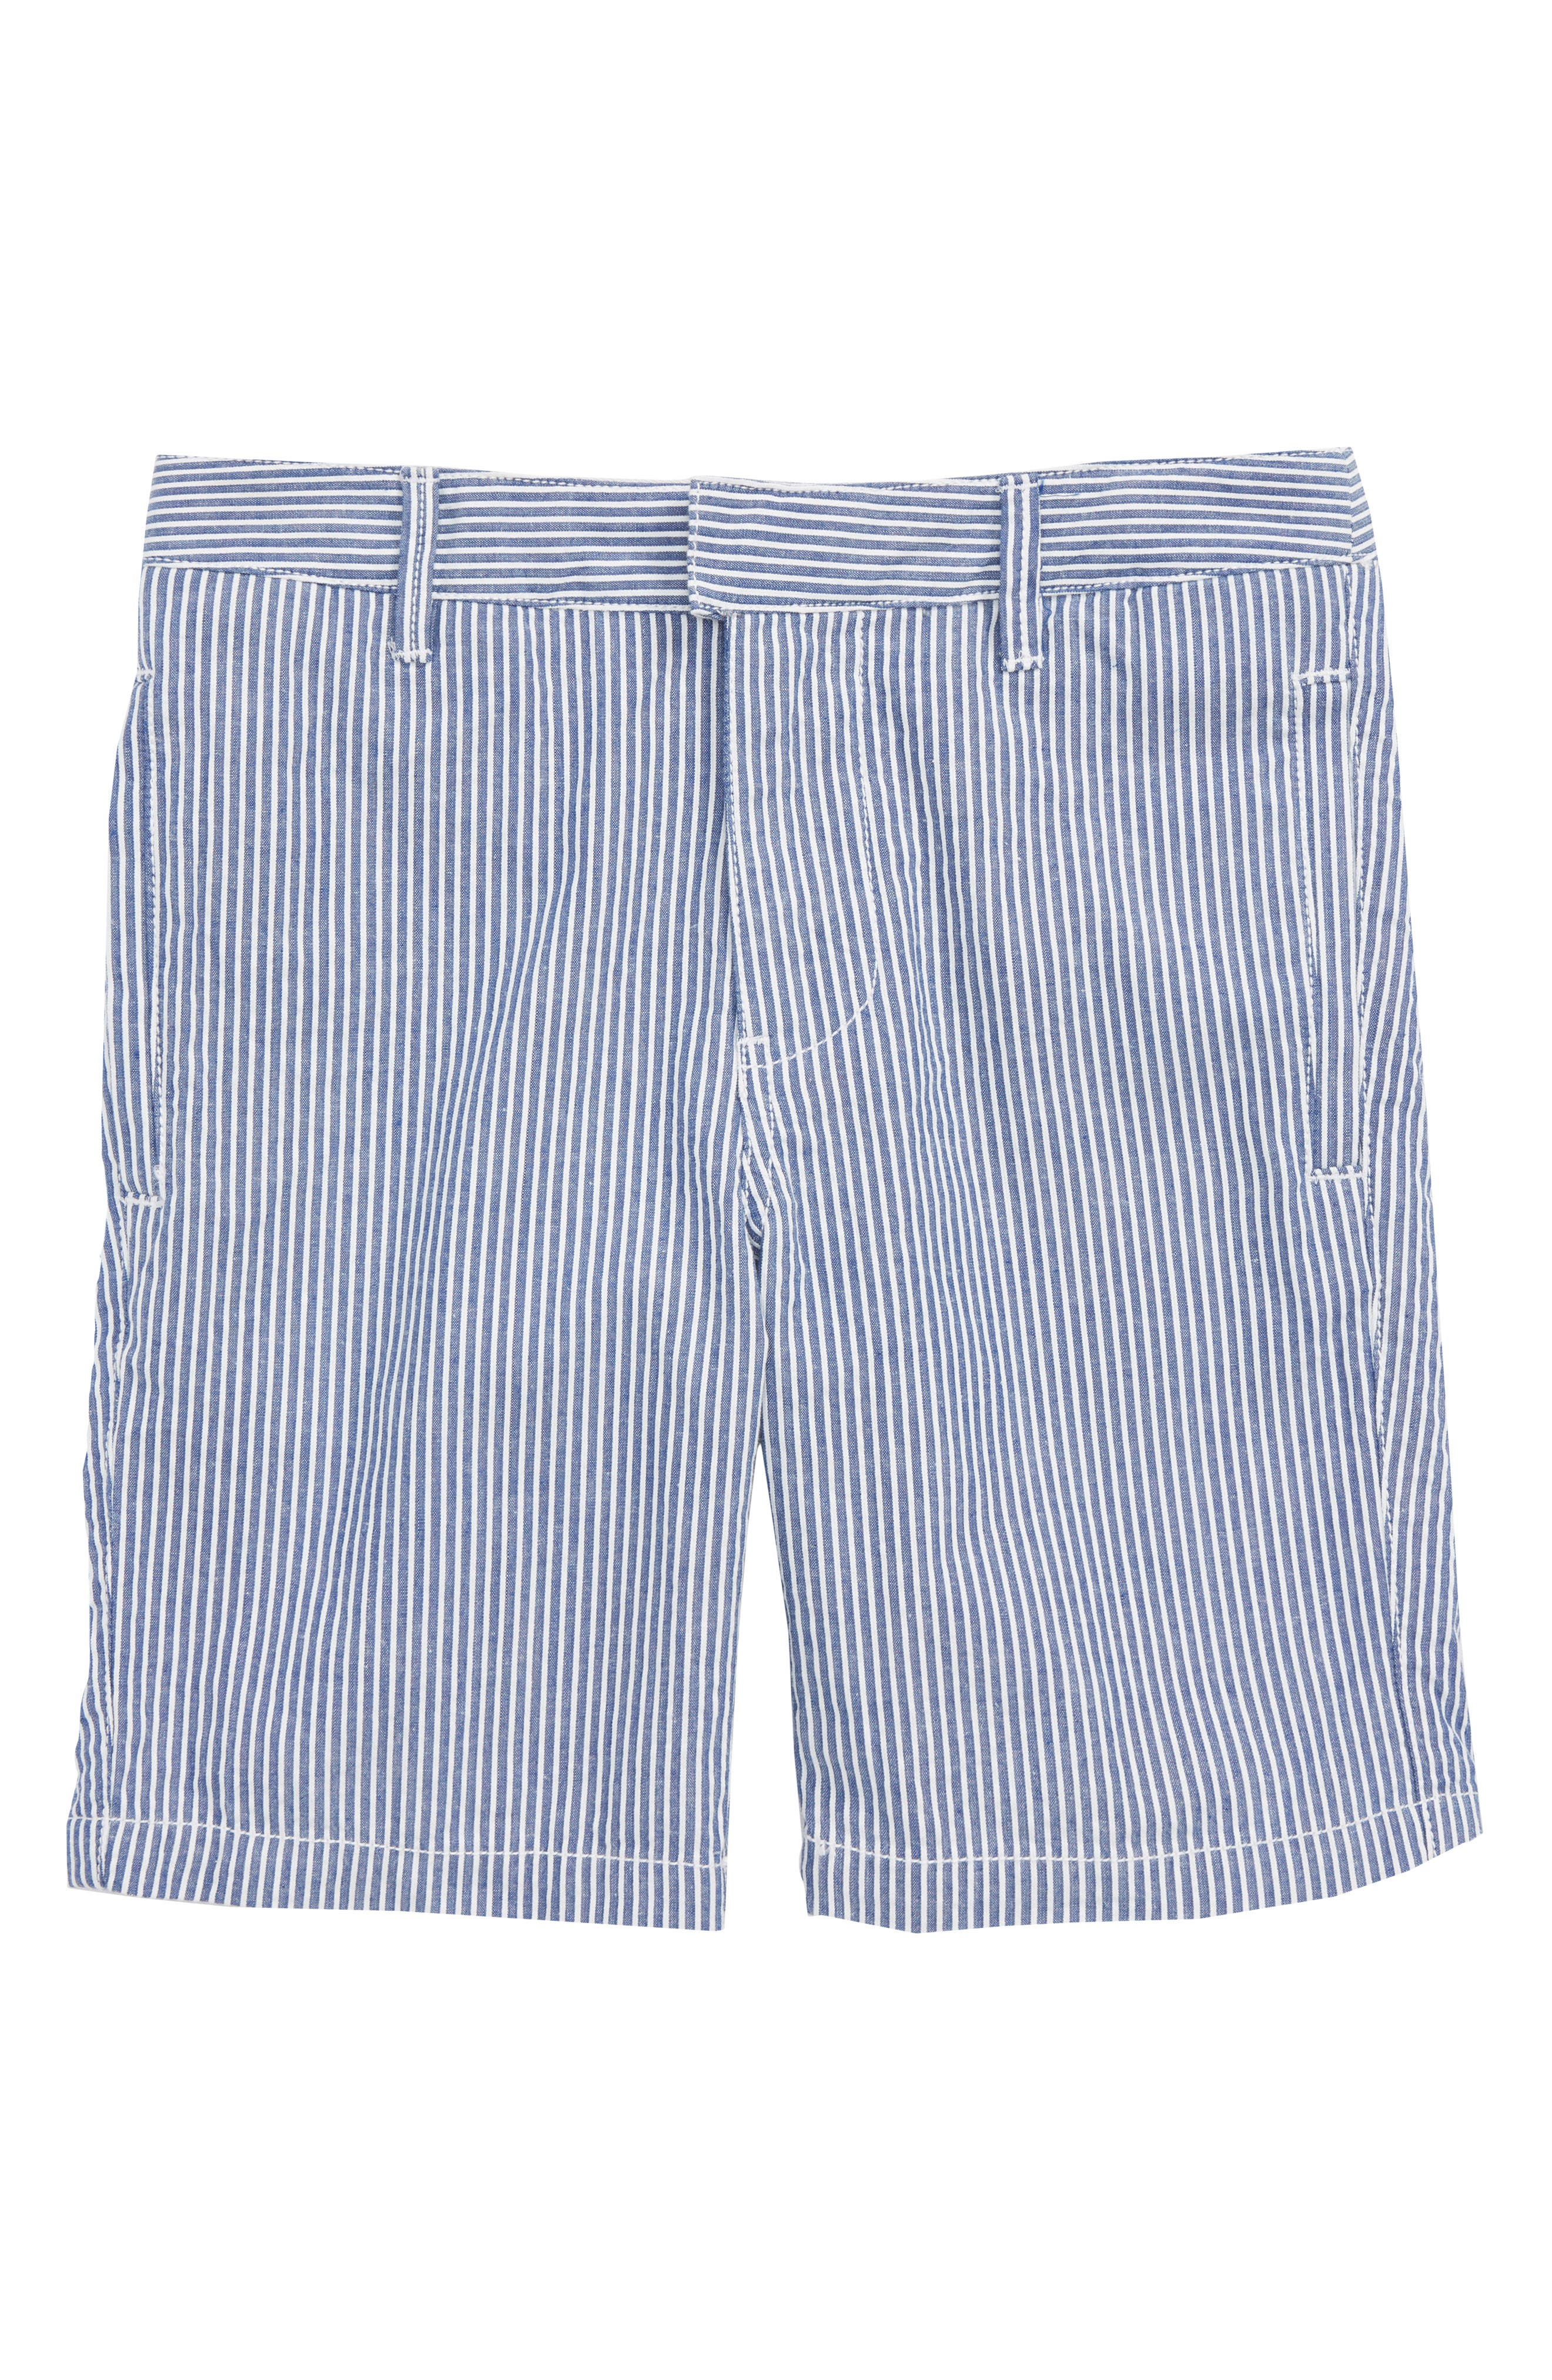 Smart Stripe Shorts,                             Main thumbnail 1, color,                             454